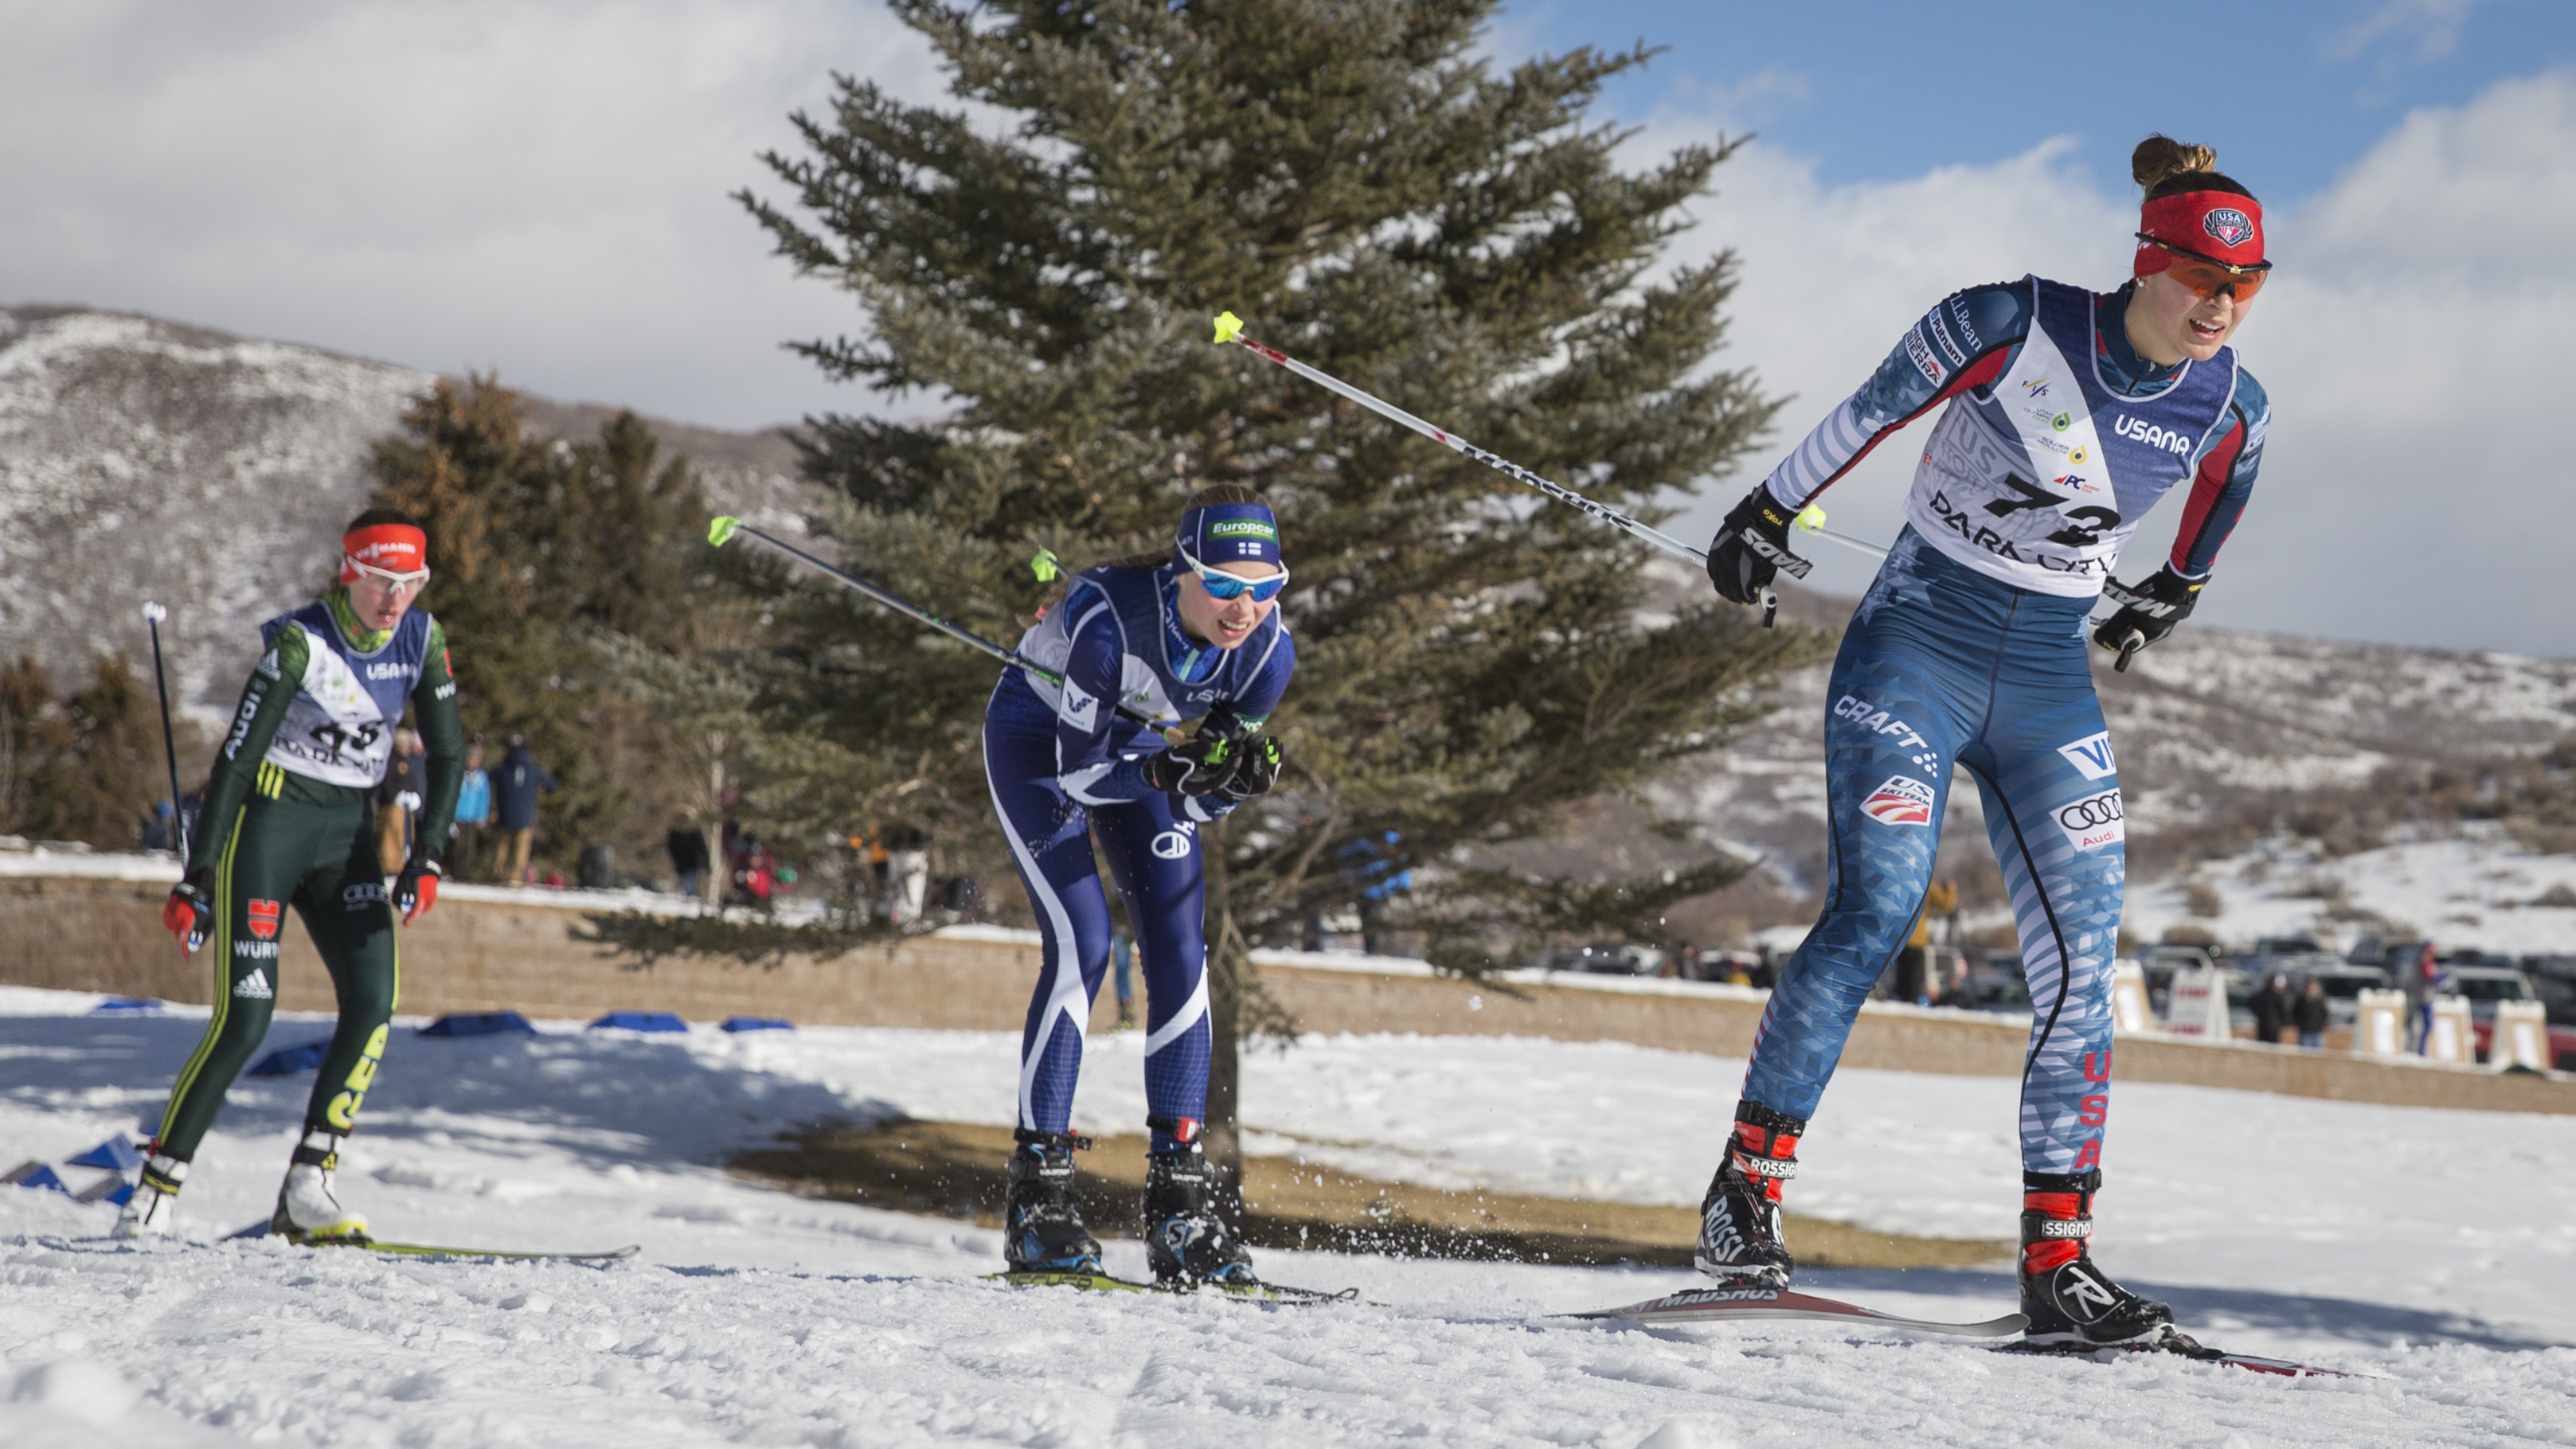 After leaving a site 'near Taco Bell,' USA Nordic is in a good position for Cortina